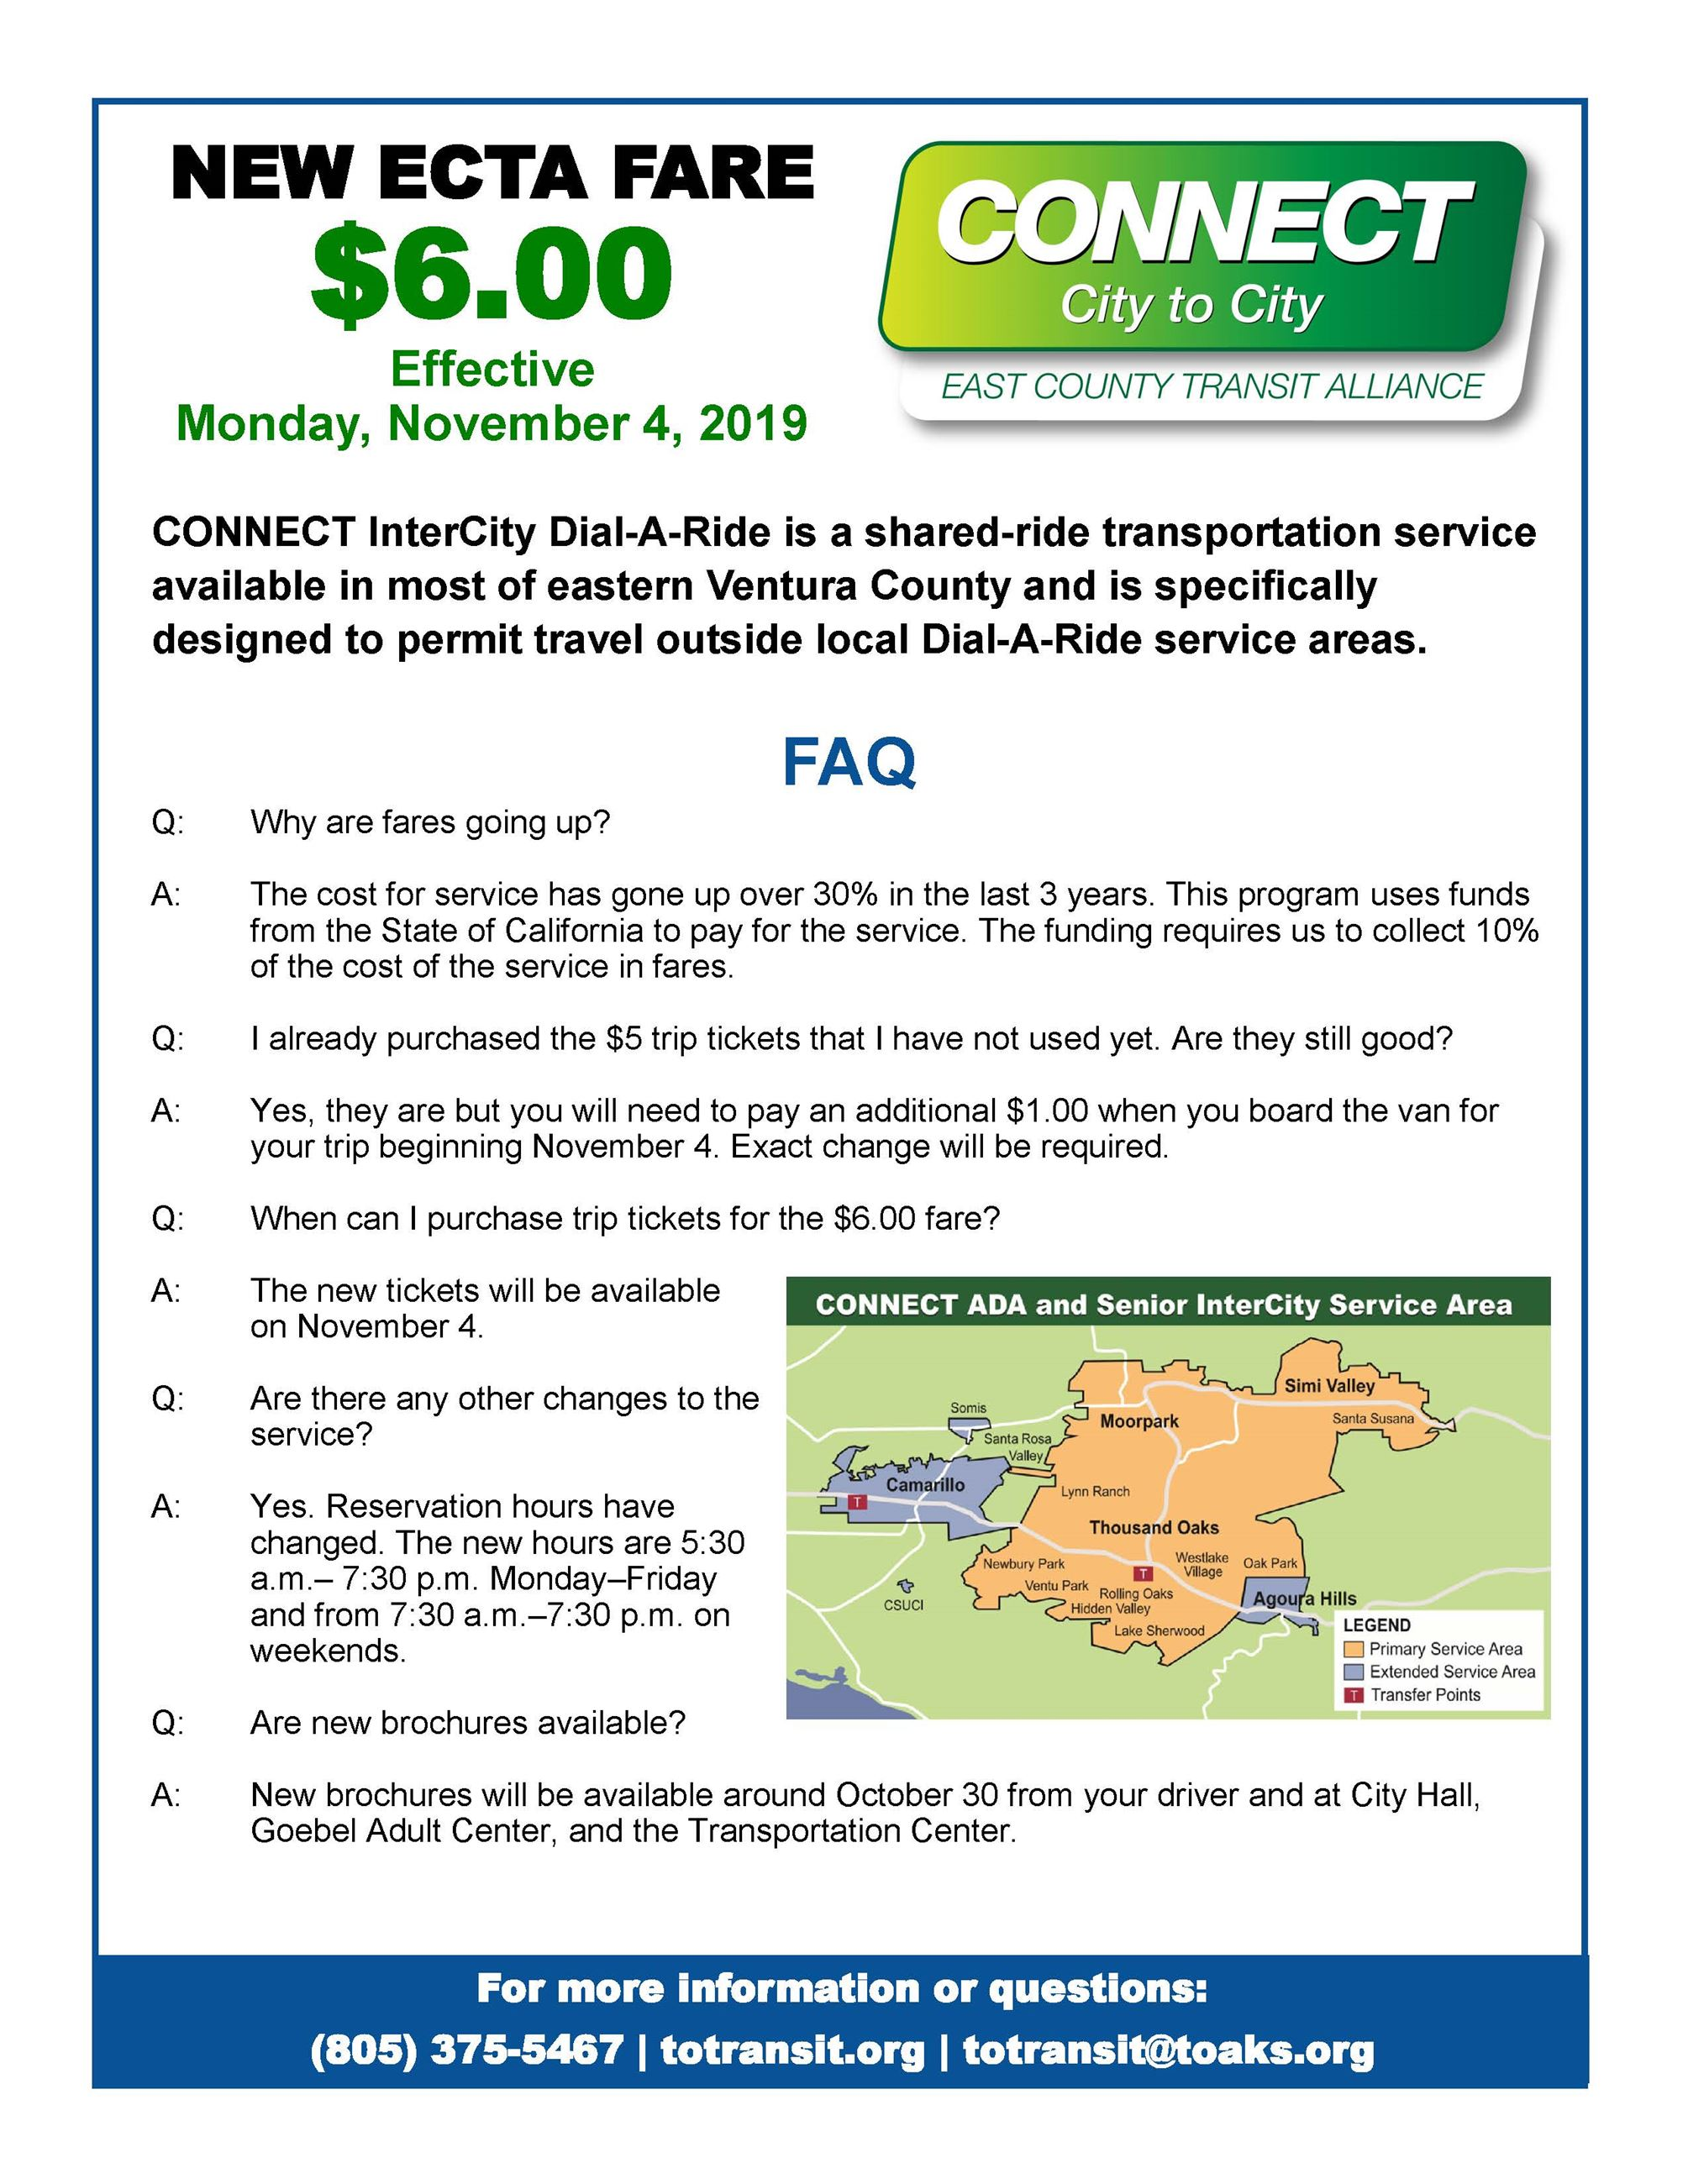 ECTA Fare Increase Flyer